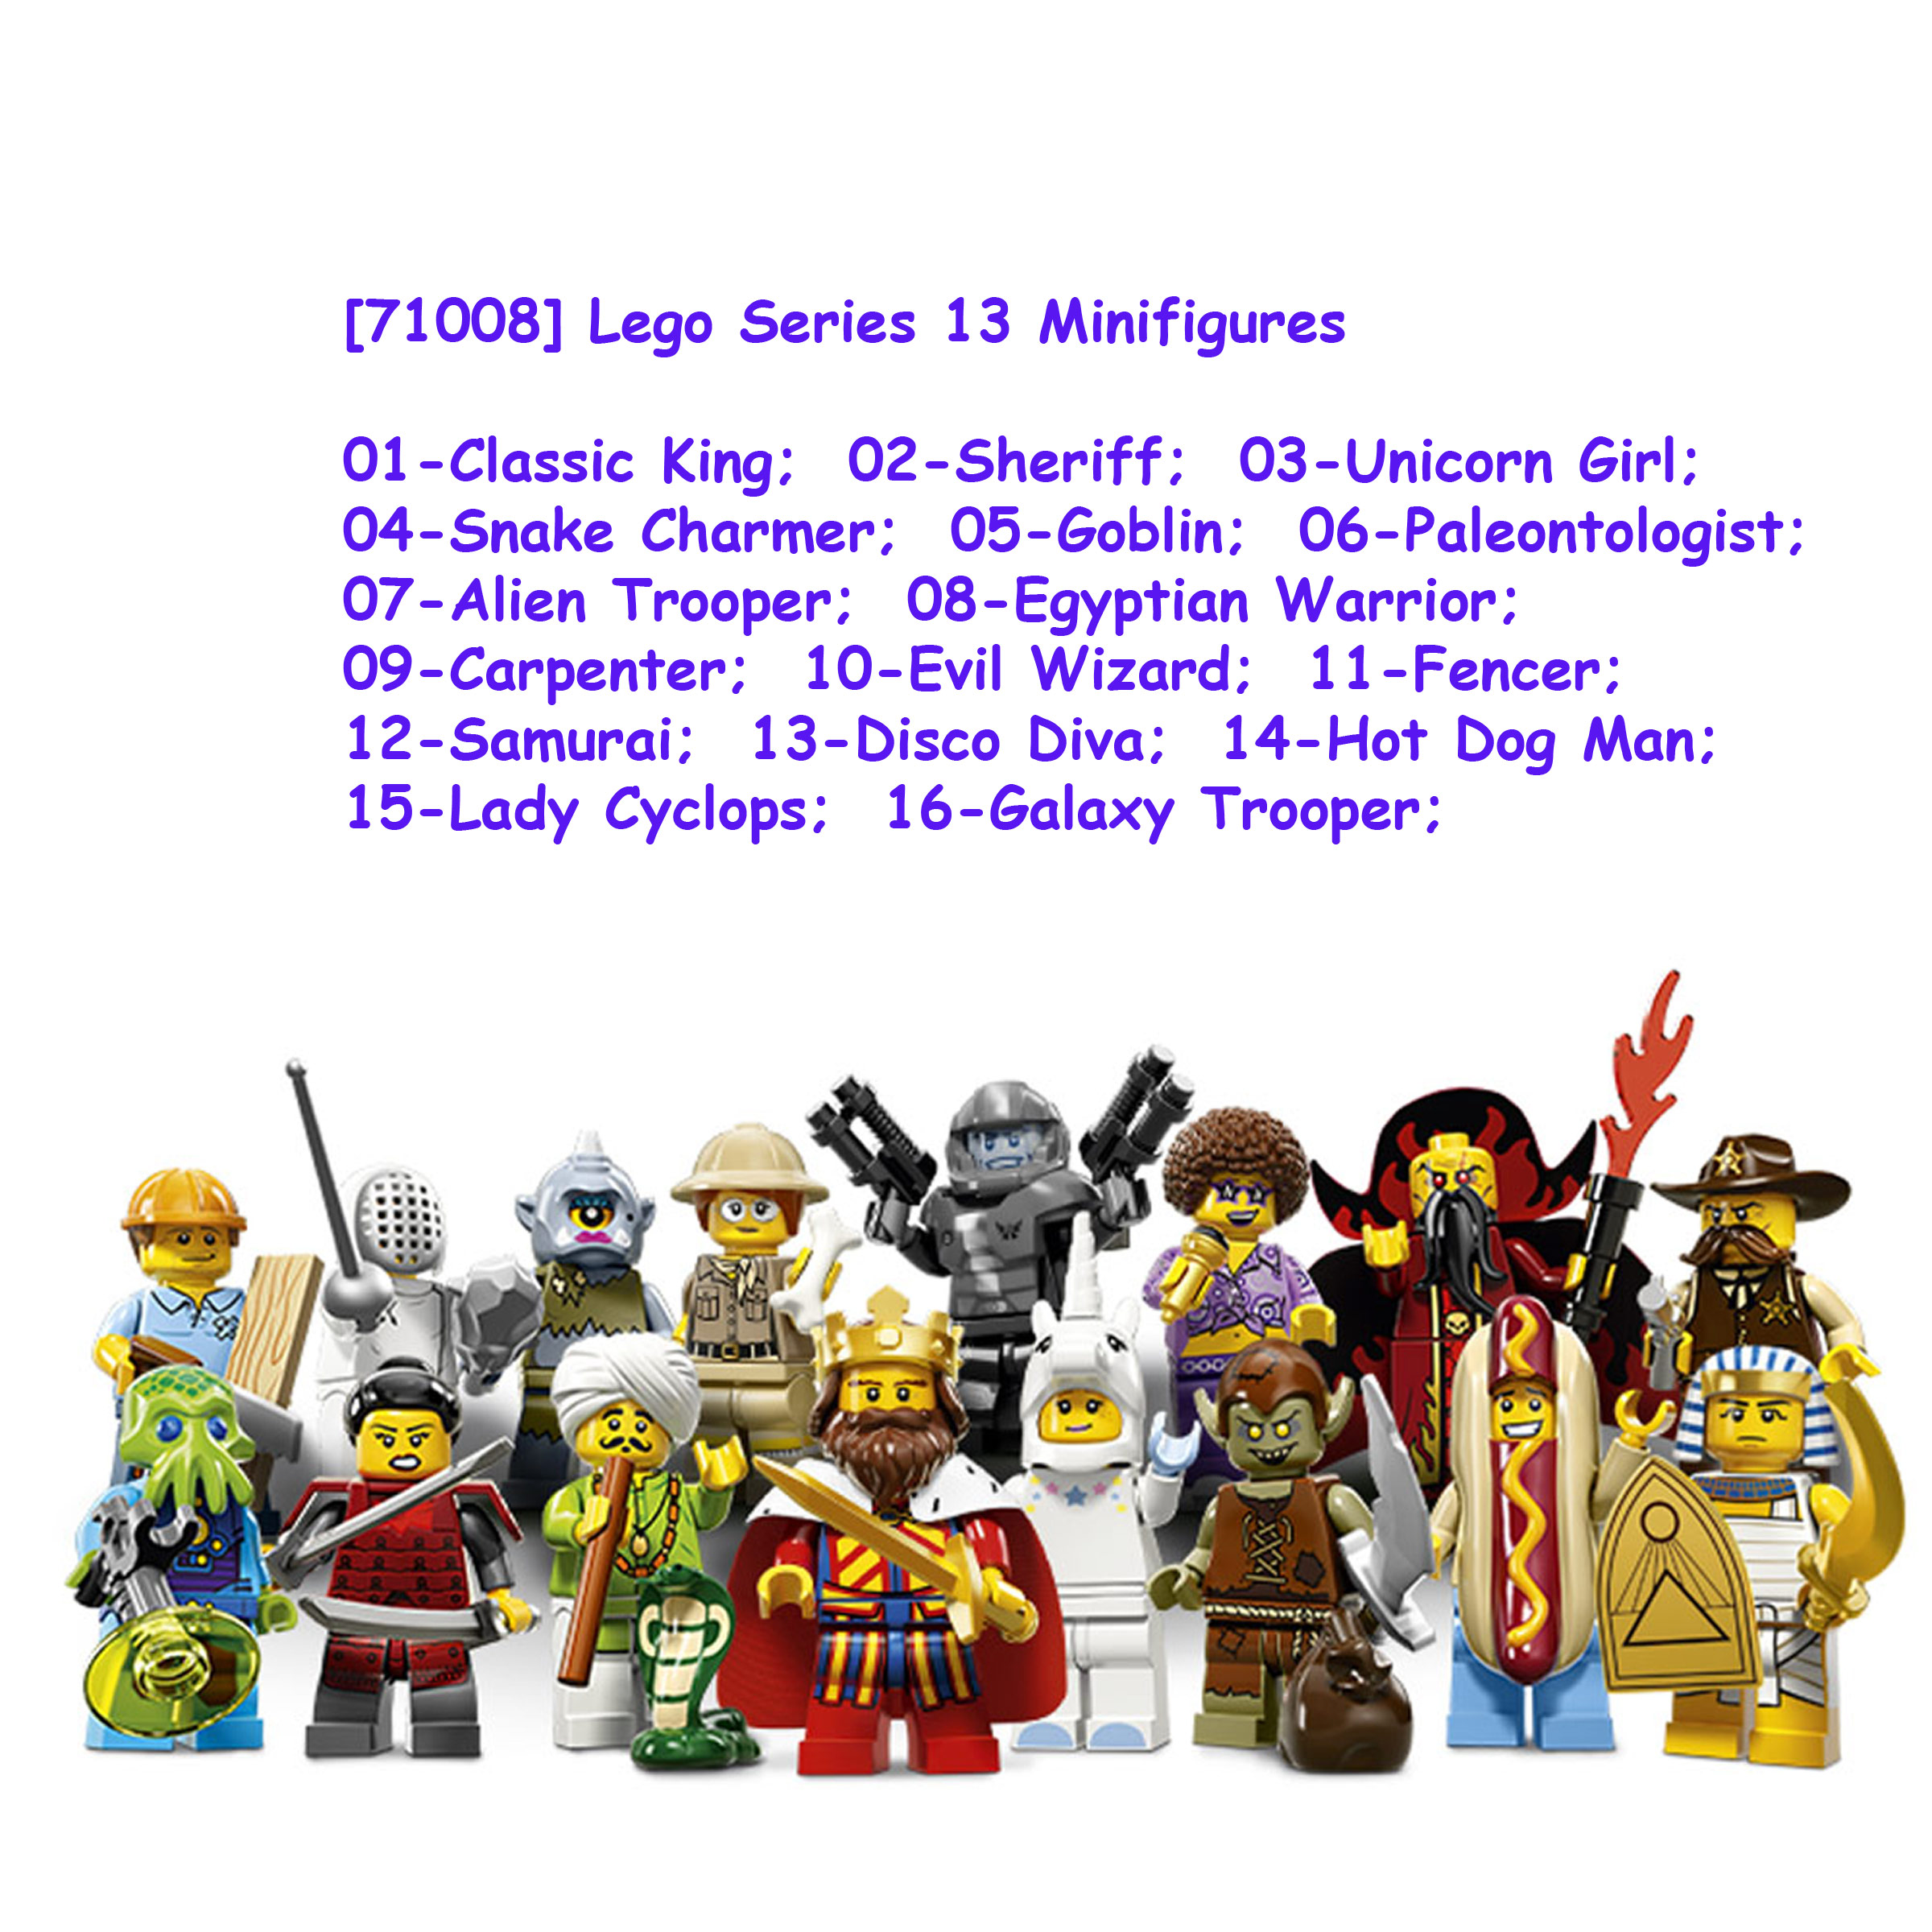 Lego 71008 Minifigure Series 13 Full Complete Set of 16 Collectible Unicorn Girl